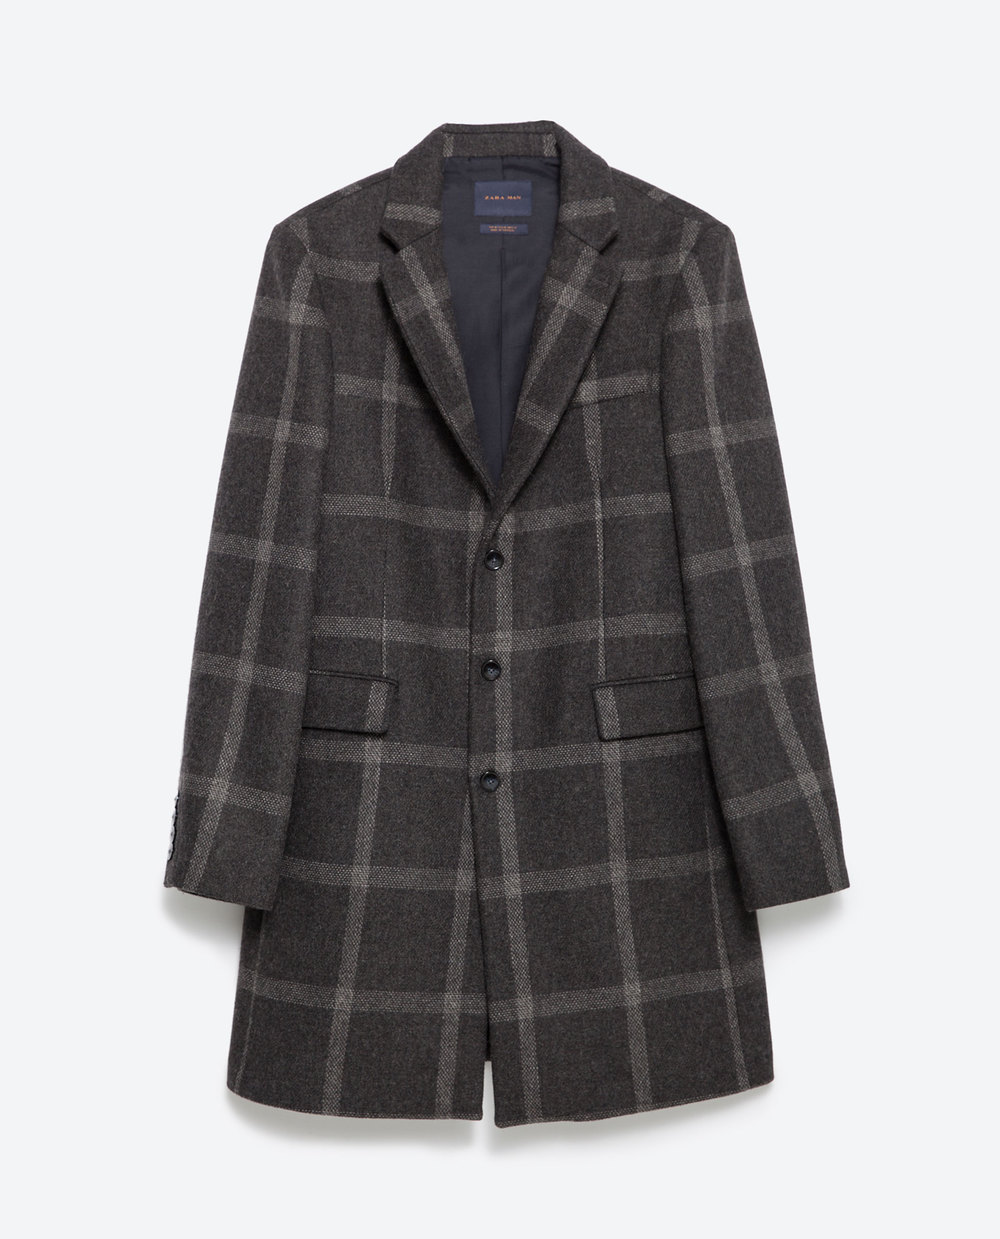 Zara Window Pane Check Coat